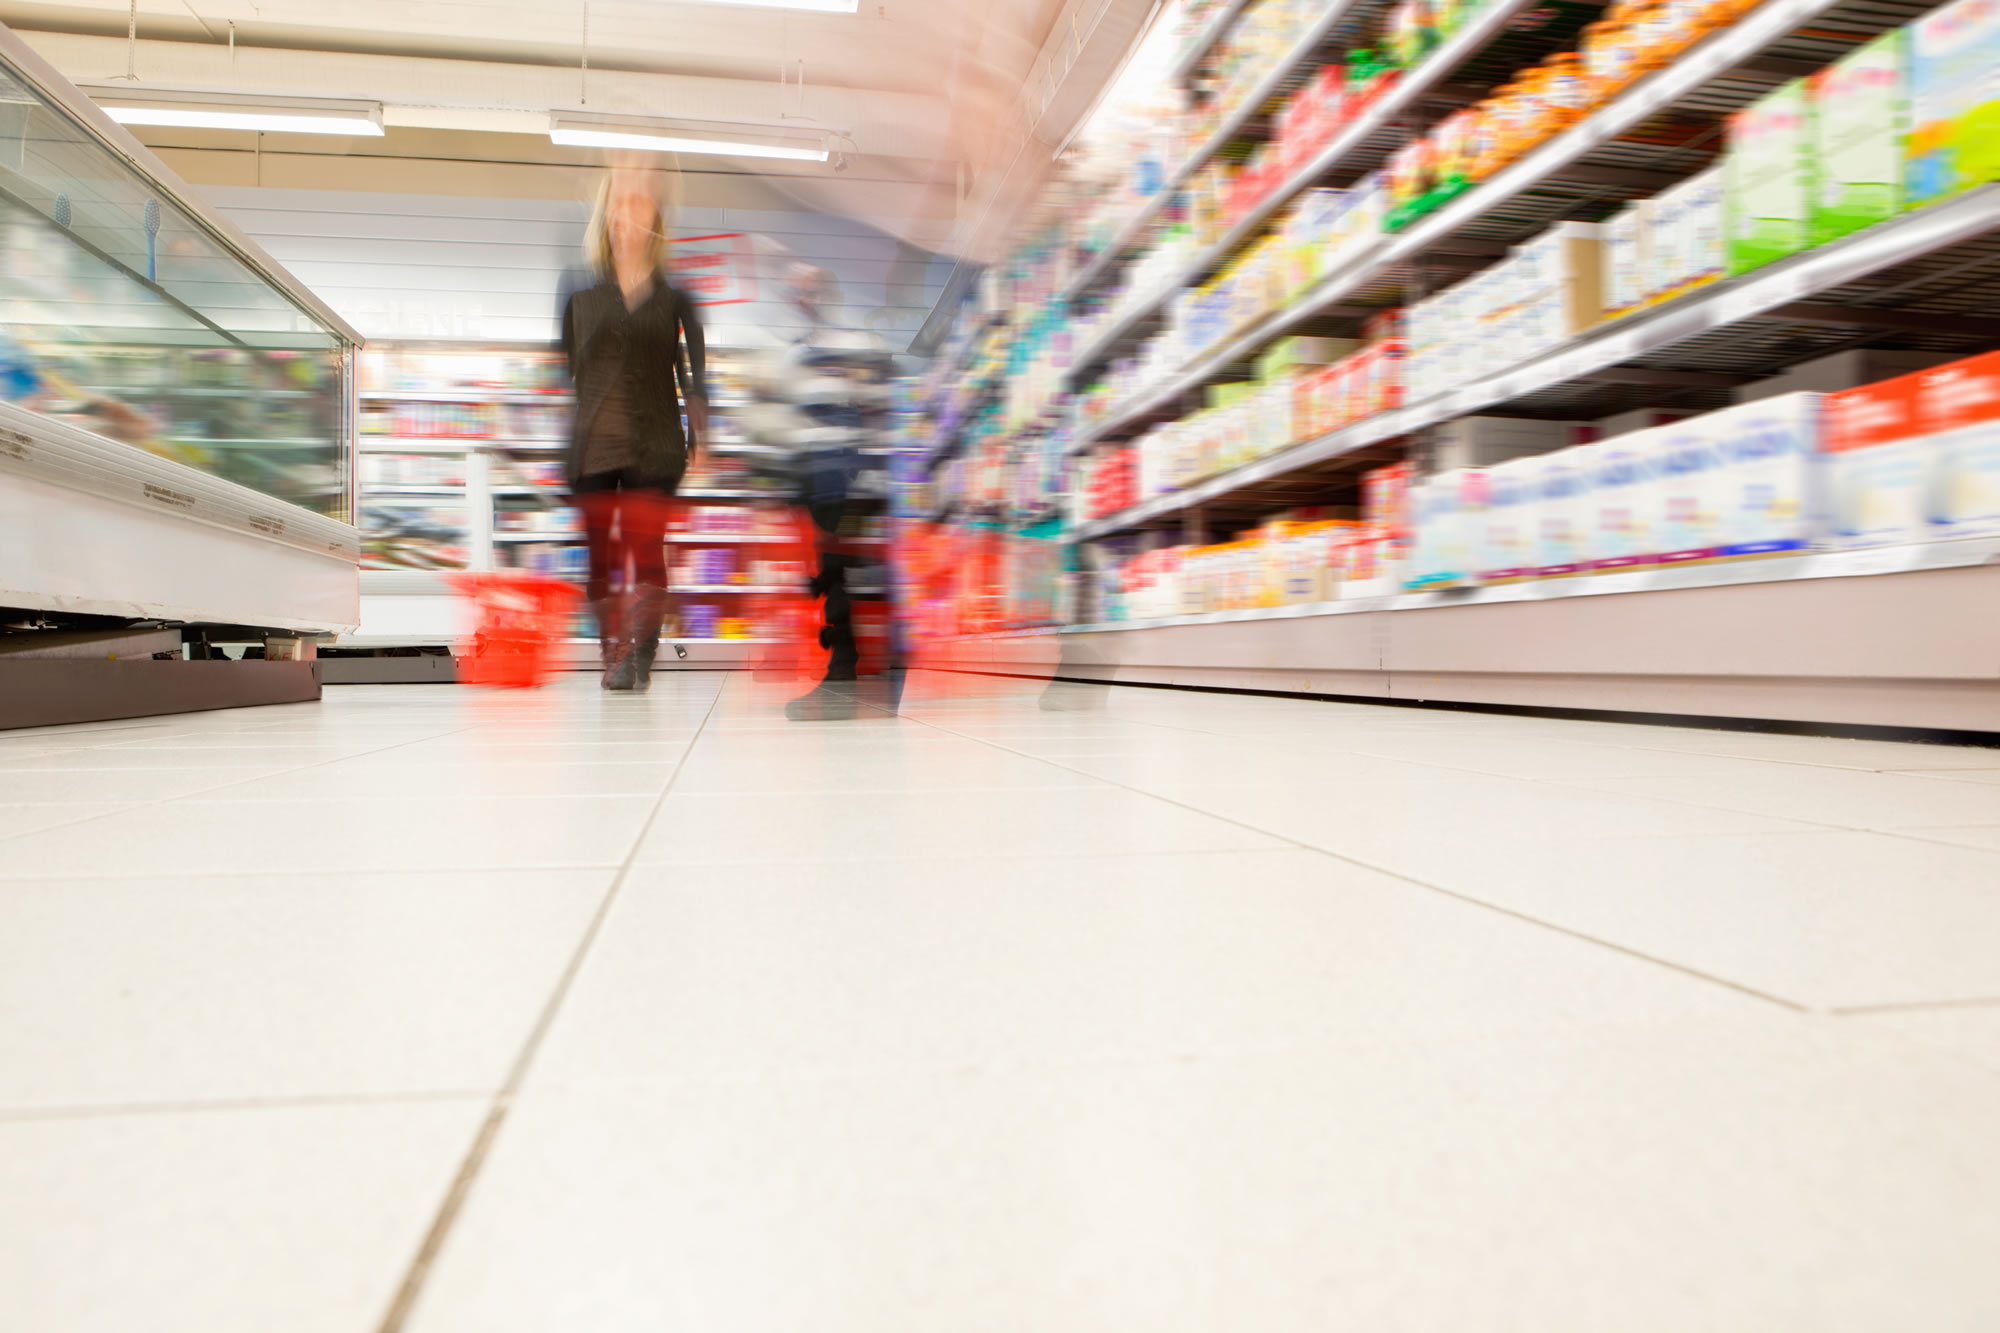 Fall in Supermarket, Public Liability Accident Compensation - Shopping Accident solicitors Aberdeen